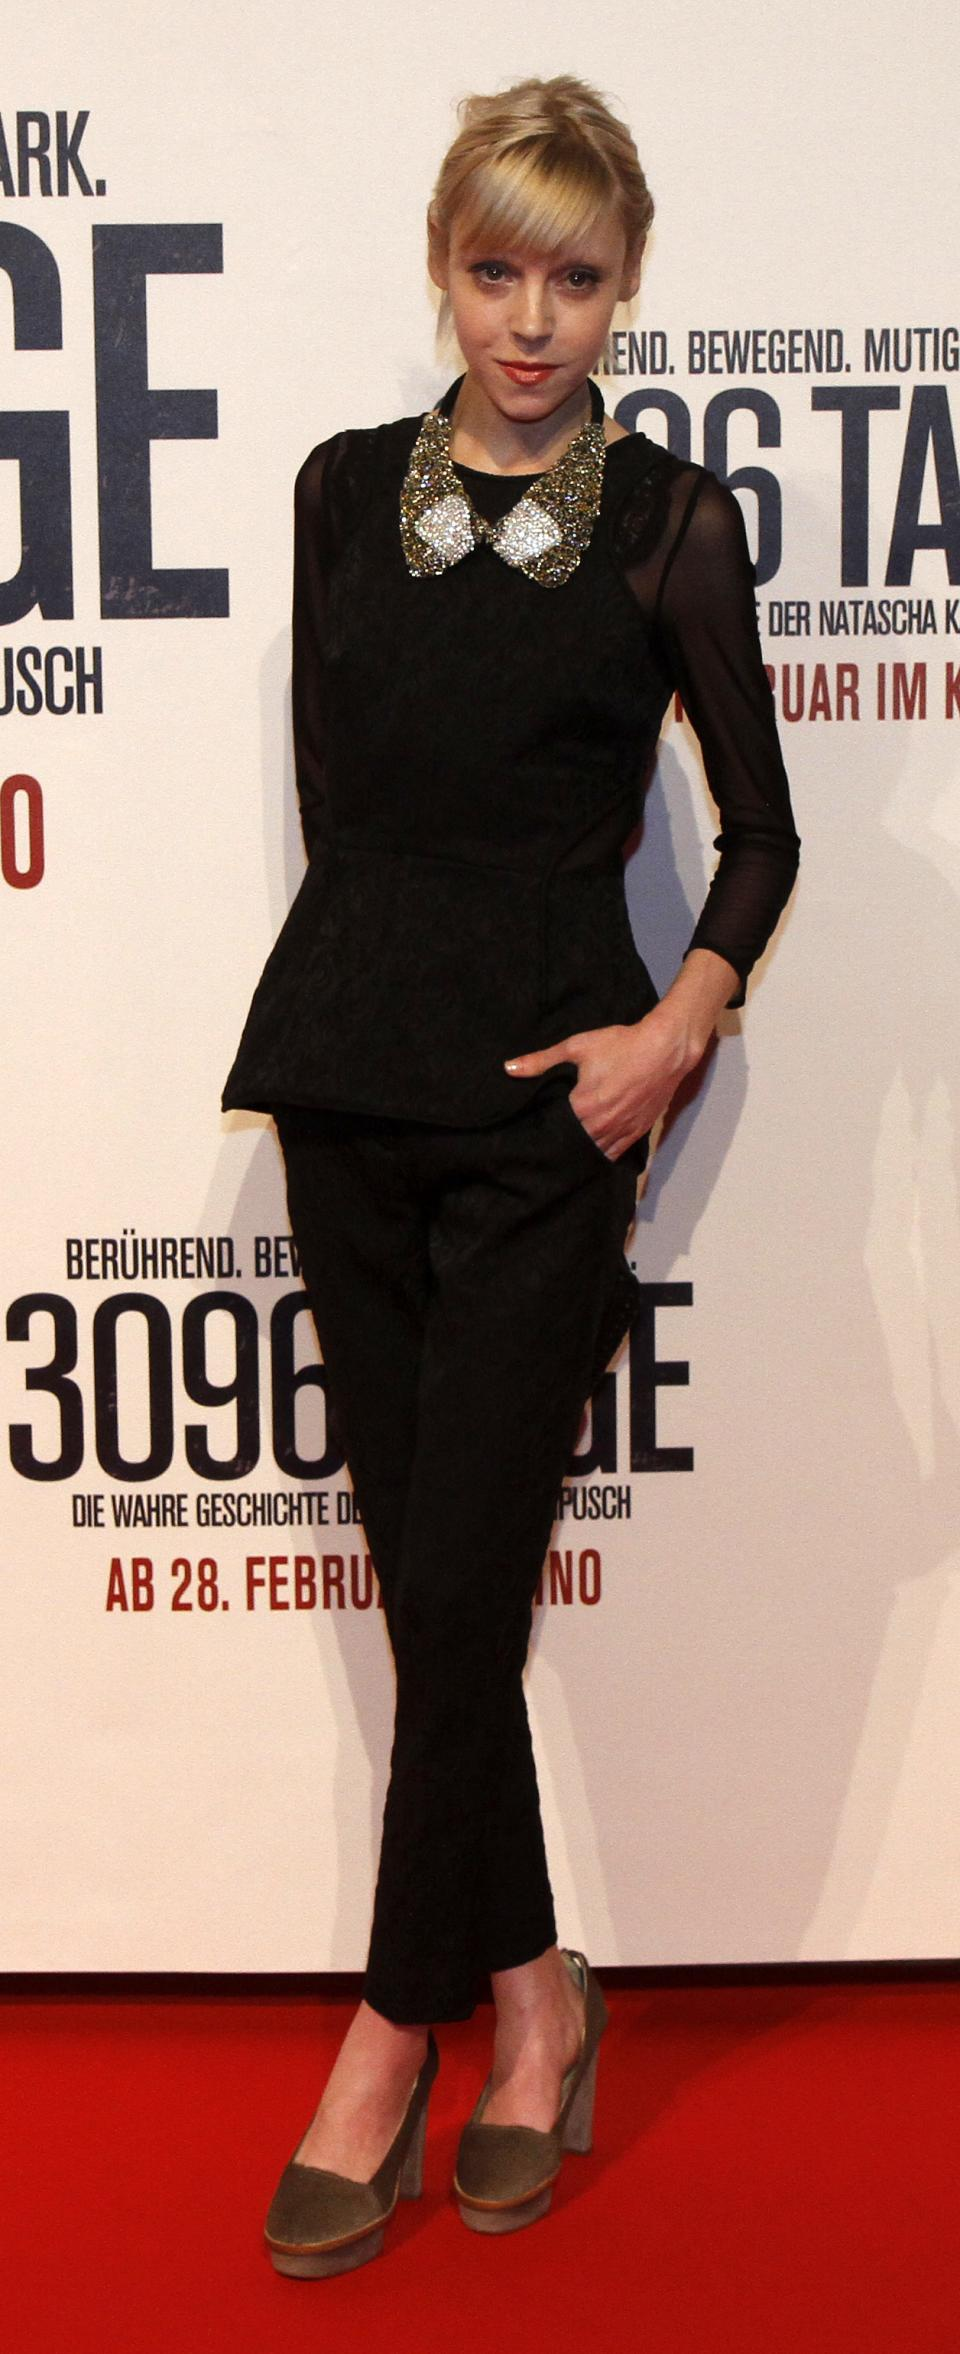 "British actress Antonia Campbell-Hughes poses for photographers before the premiere of the film ""3096 Days"" in Vienna, Austria, Monday Feb. 25, 2013.  The film tells the story of Kampusch who was abducted as a schoolgirl and held prisoner in a cellar for almost nine years. (AP Photo/Ronald Zak)"